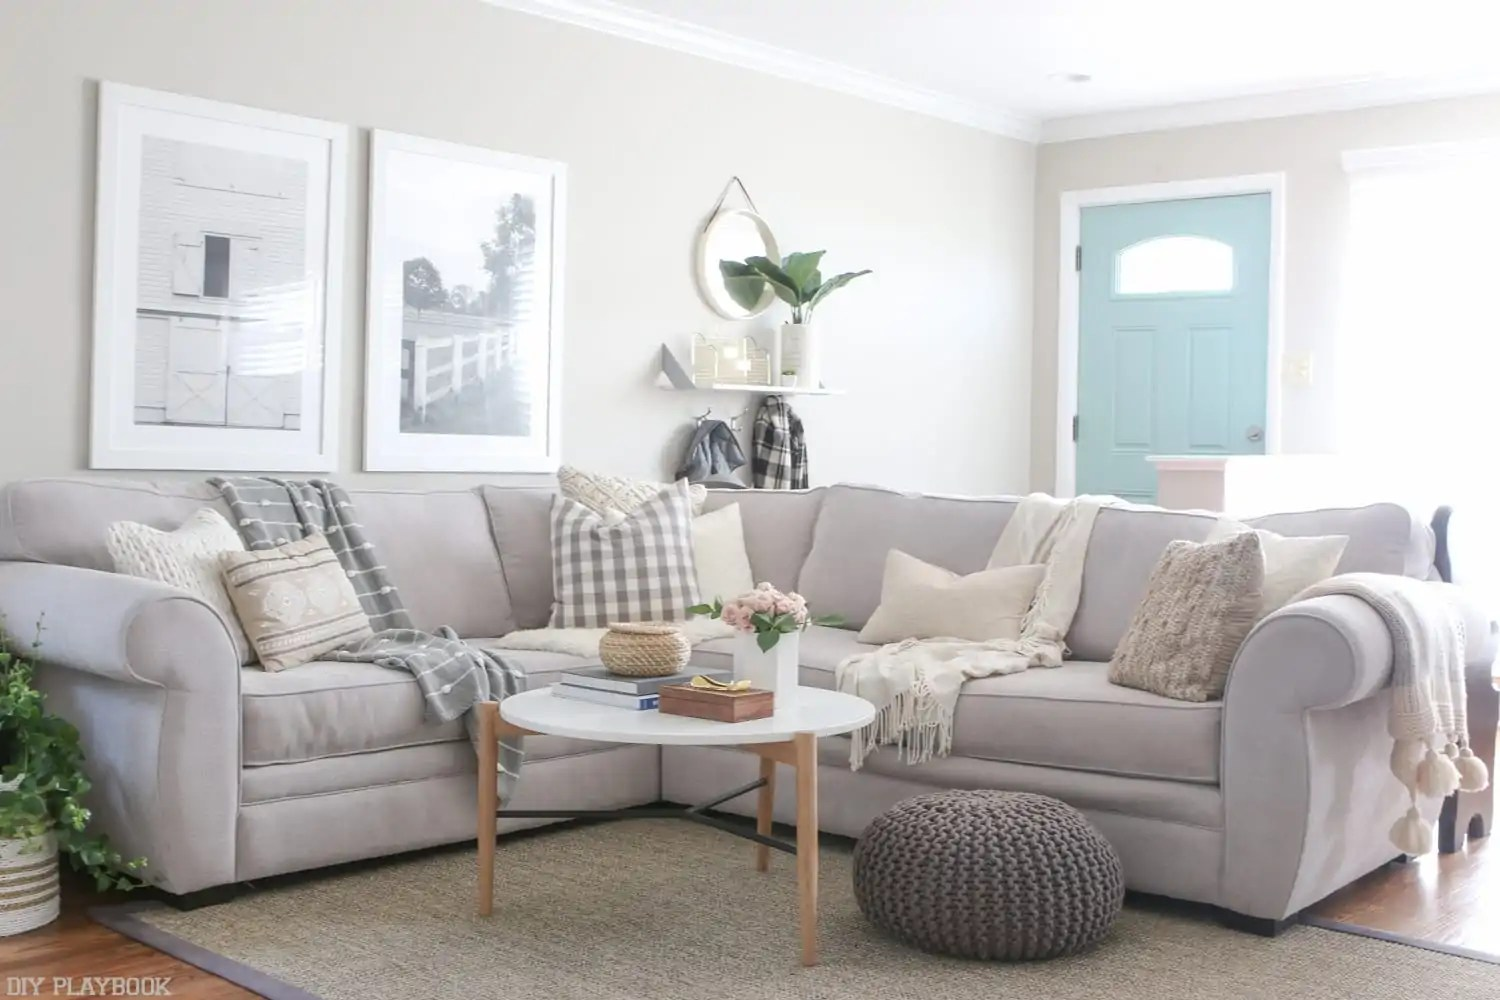 how to make mismatched living room furniture work arrange around tv avoid too much matching in design the diy playbook you can use same approach your family a extra cozy couch paired if do have